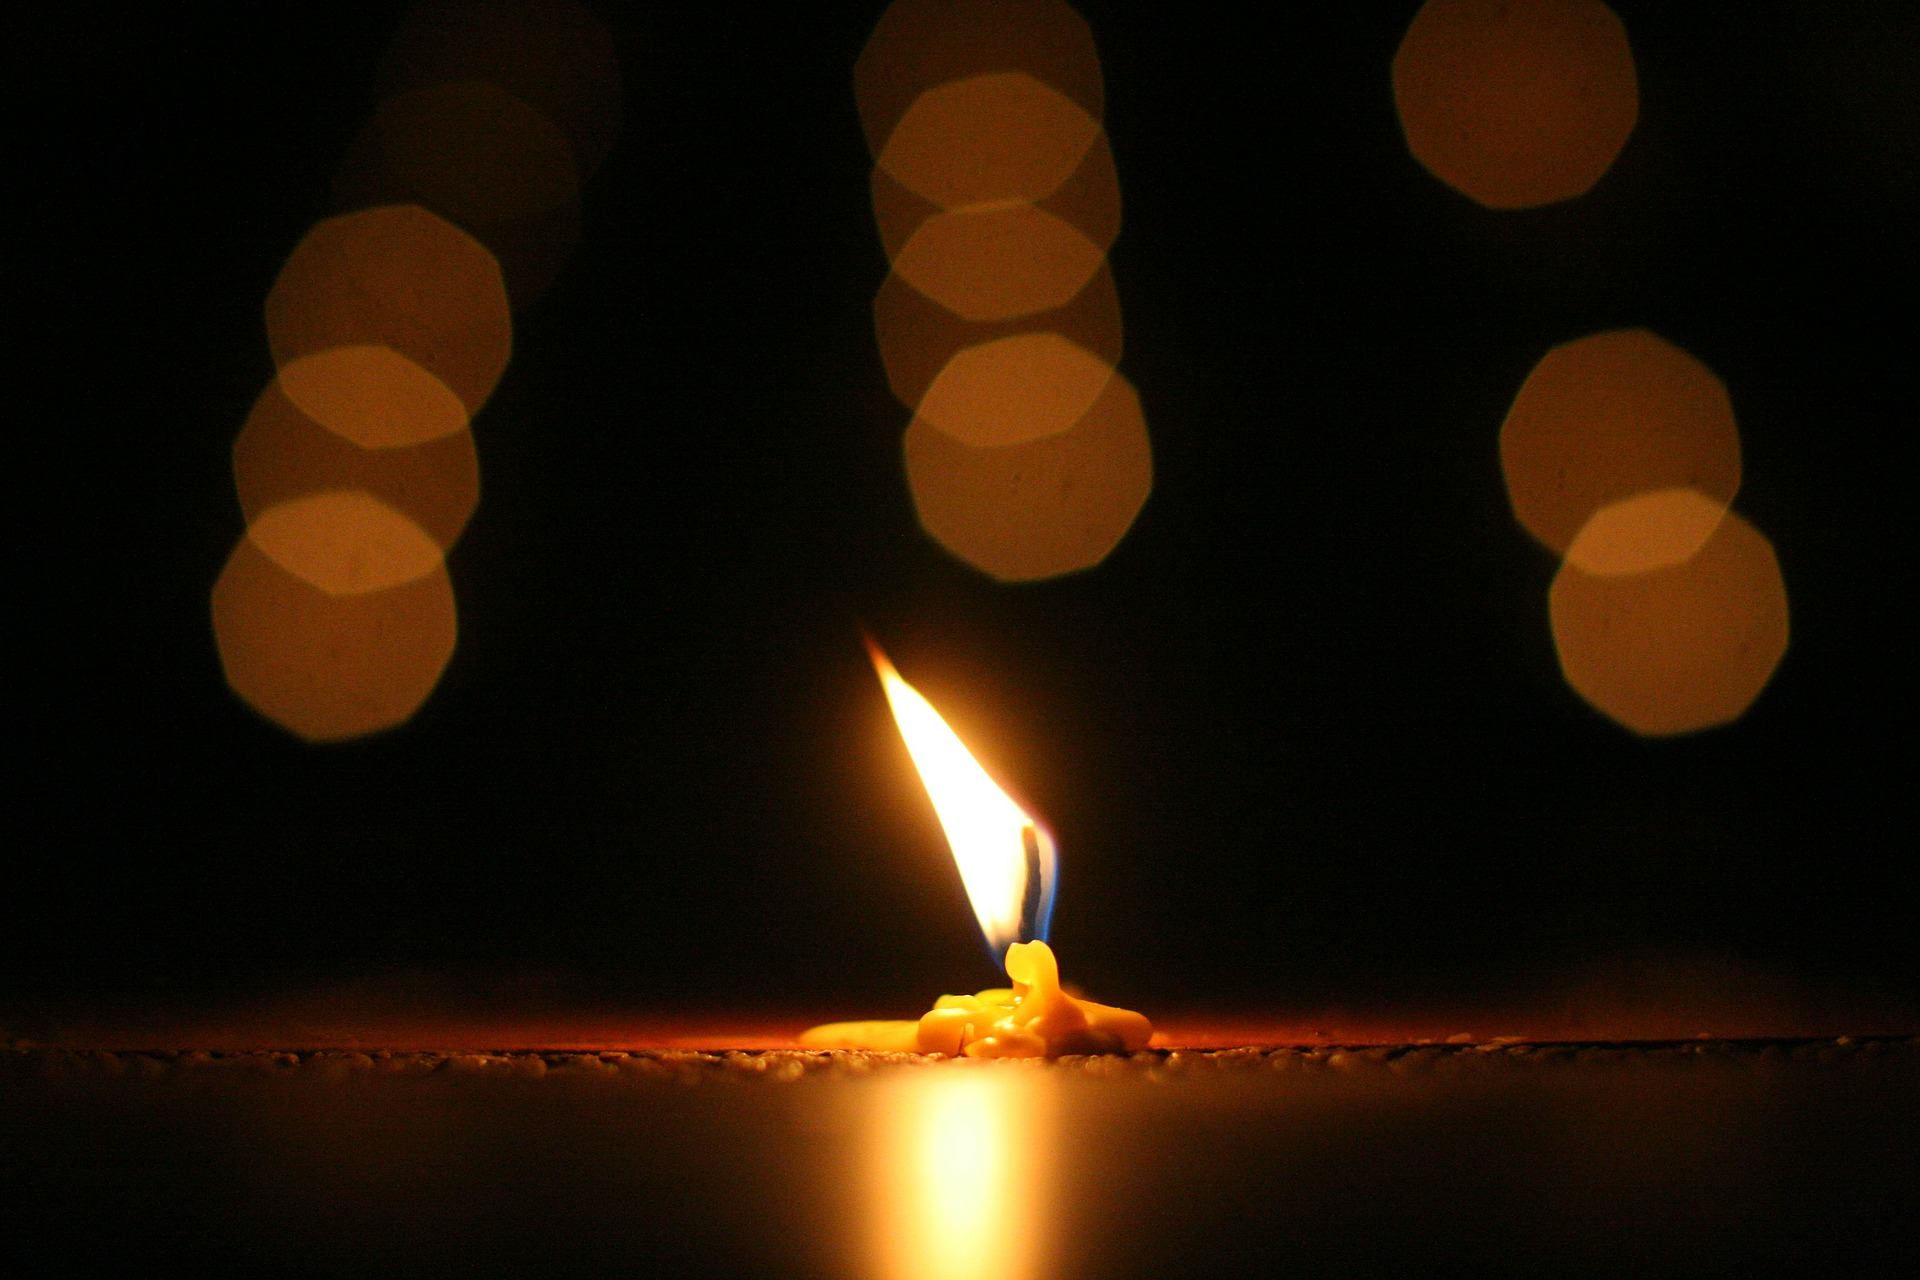 candle, candles, wax, melted, burning candle, flame, petroleum product, industrial outpost